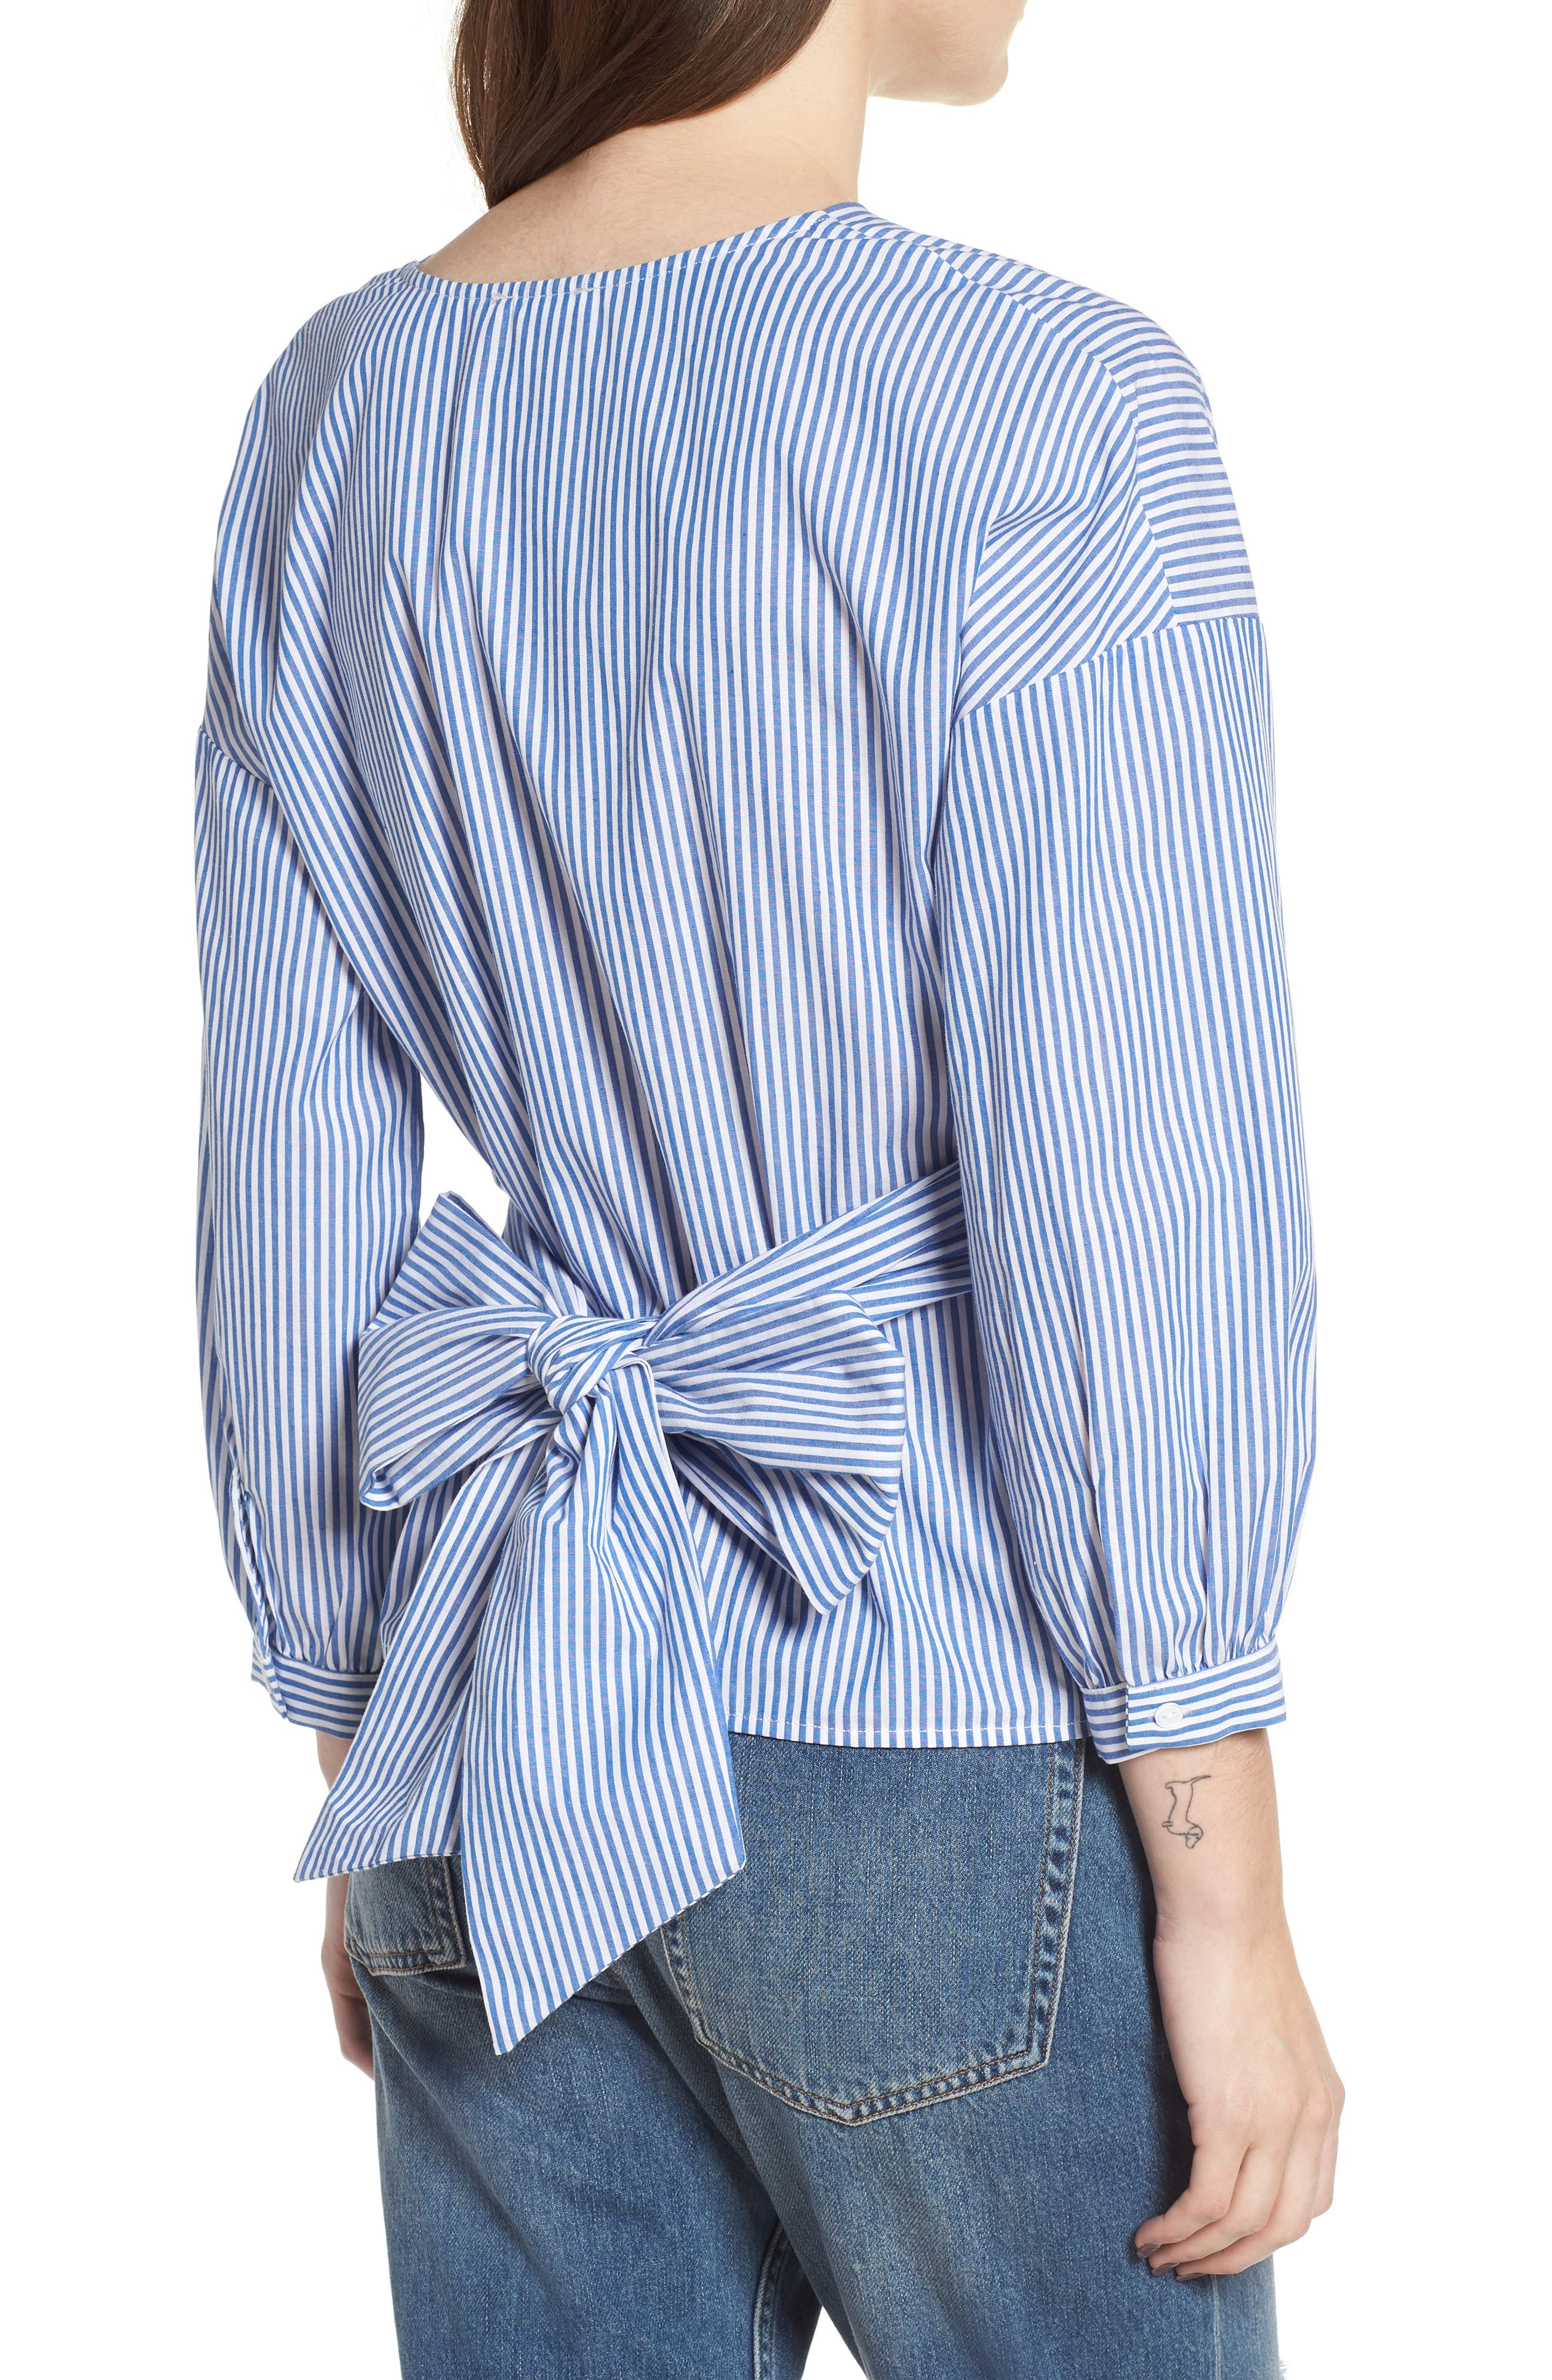 Stripe Wrap Top,                             Alternate thumbnail 2, color,                             Blue/ White